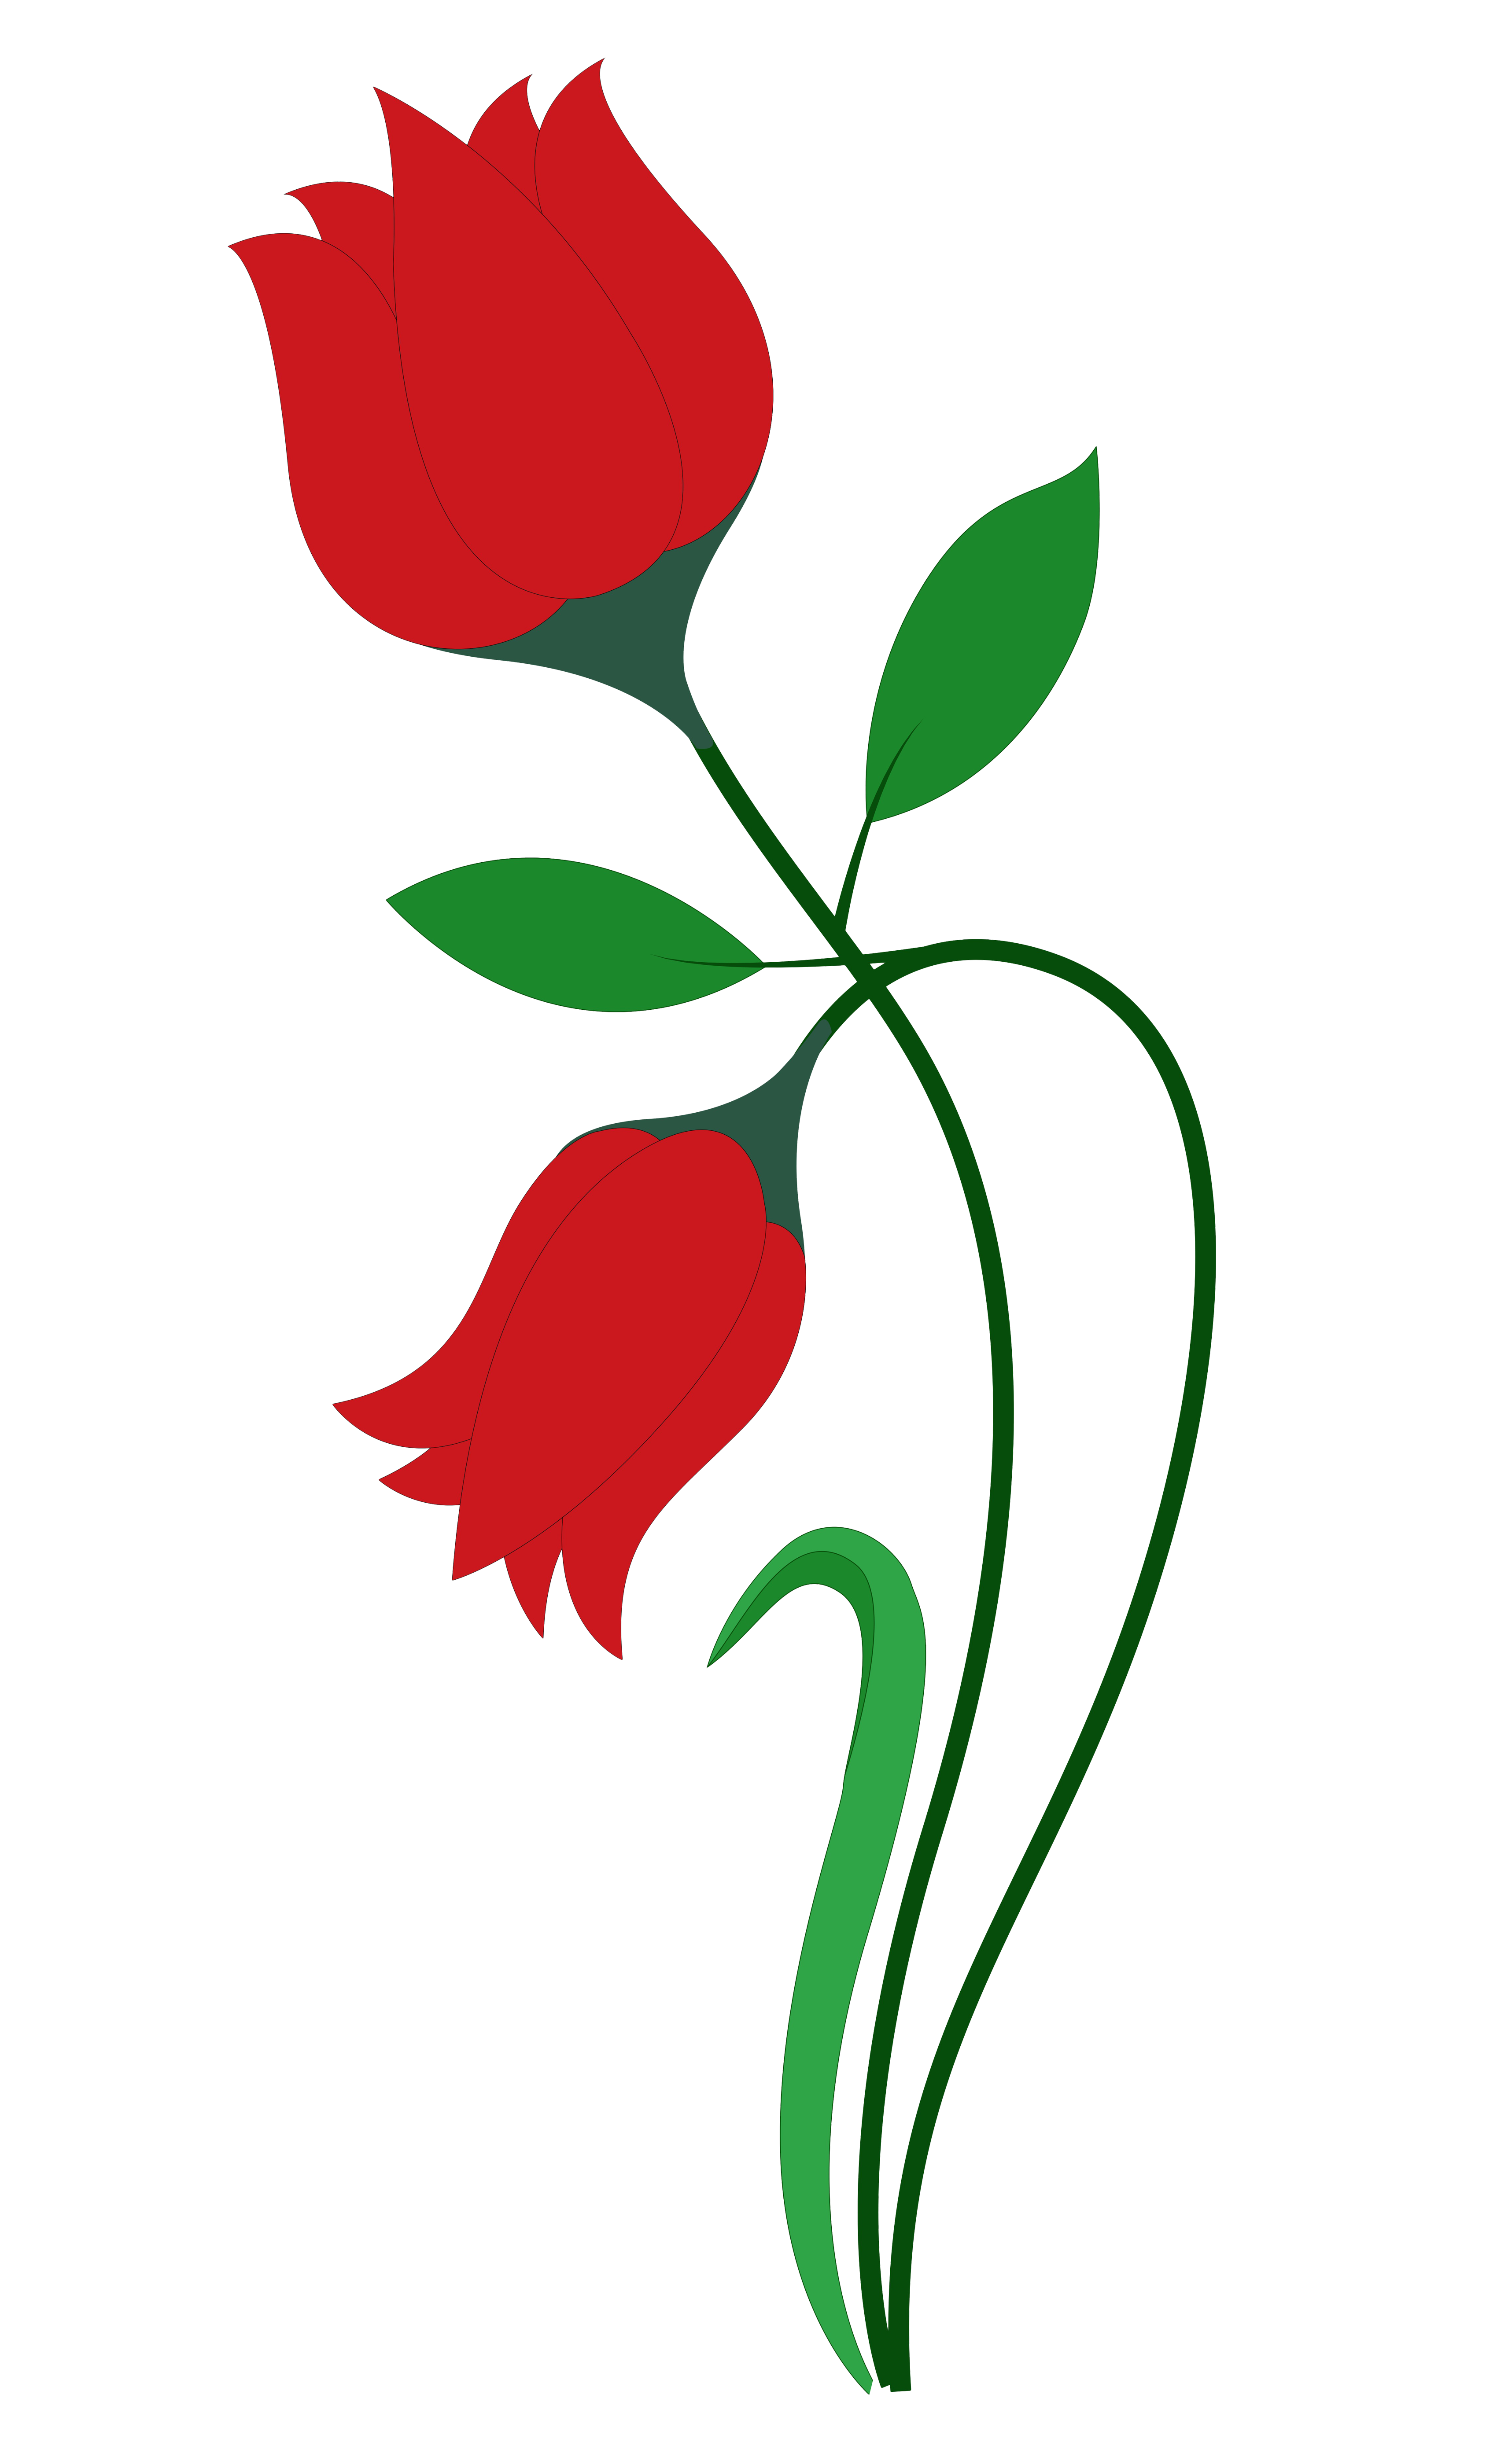 Rose Flower Vector Png Image Purepng Free Transparent Cc0 Png